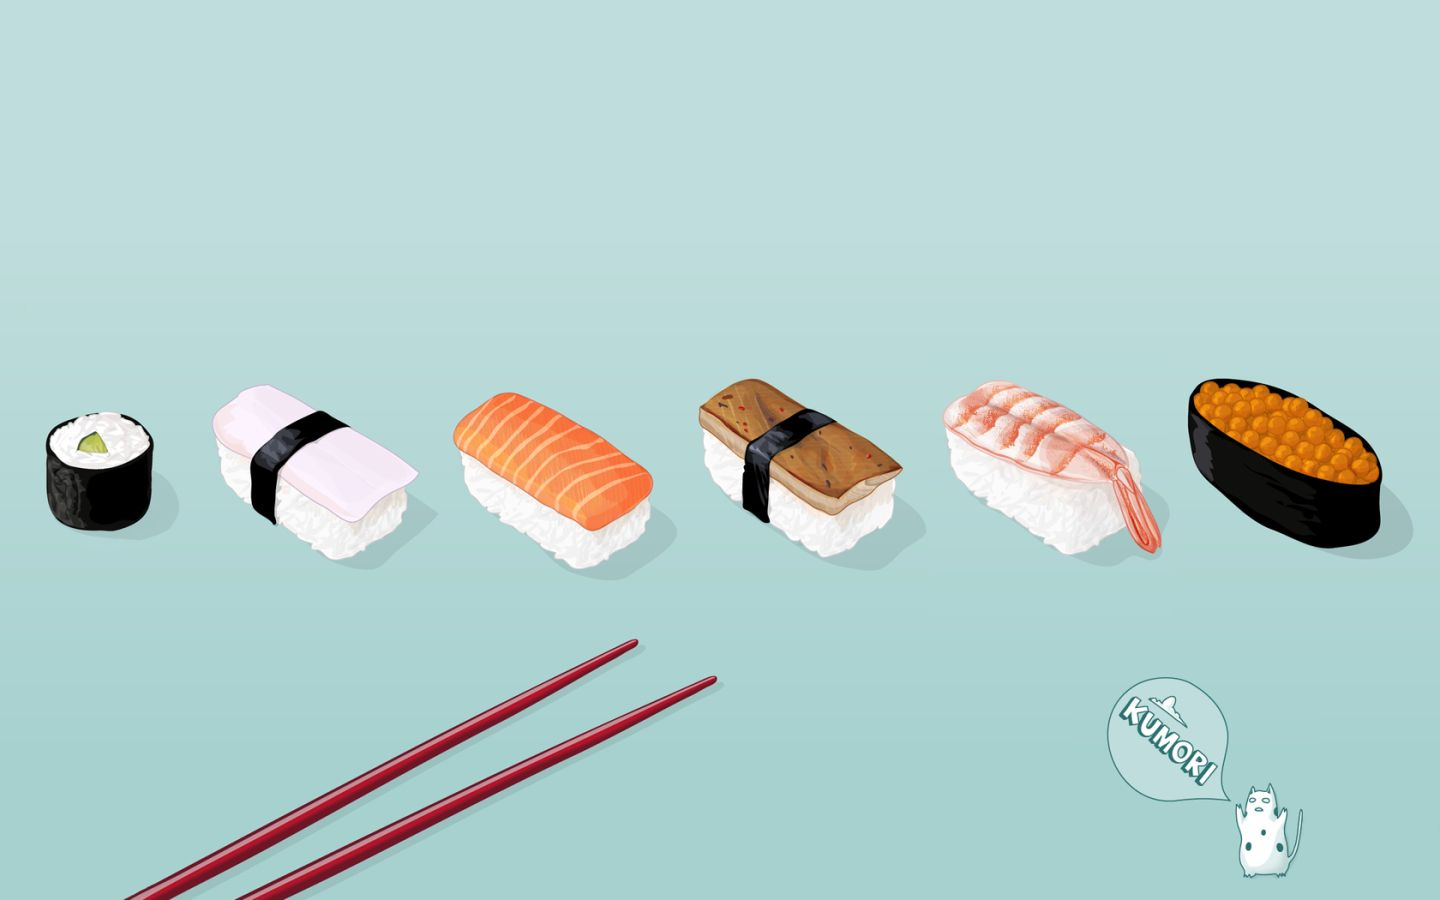 View, download, comment, and rate this 1440x900 Sushi